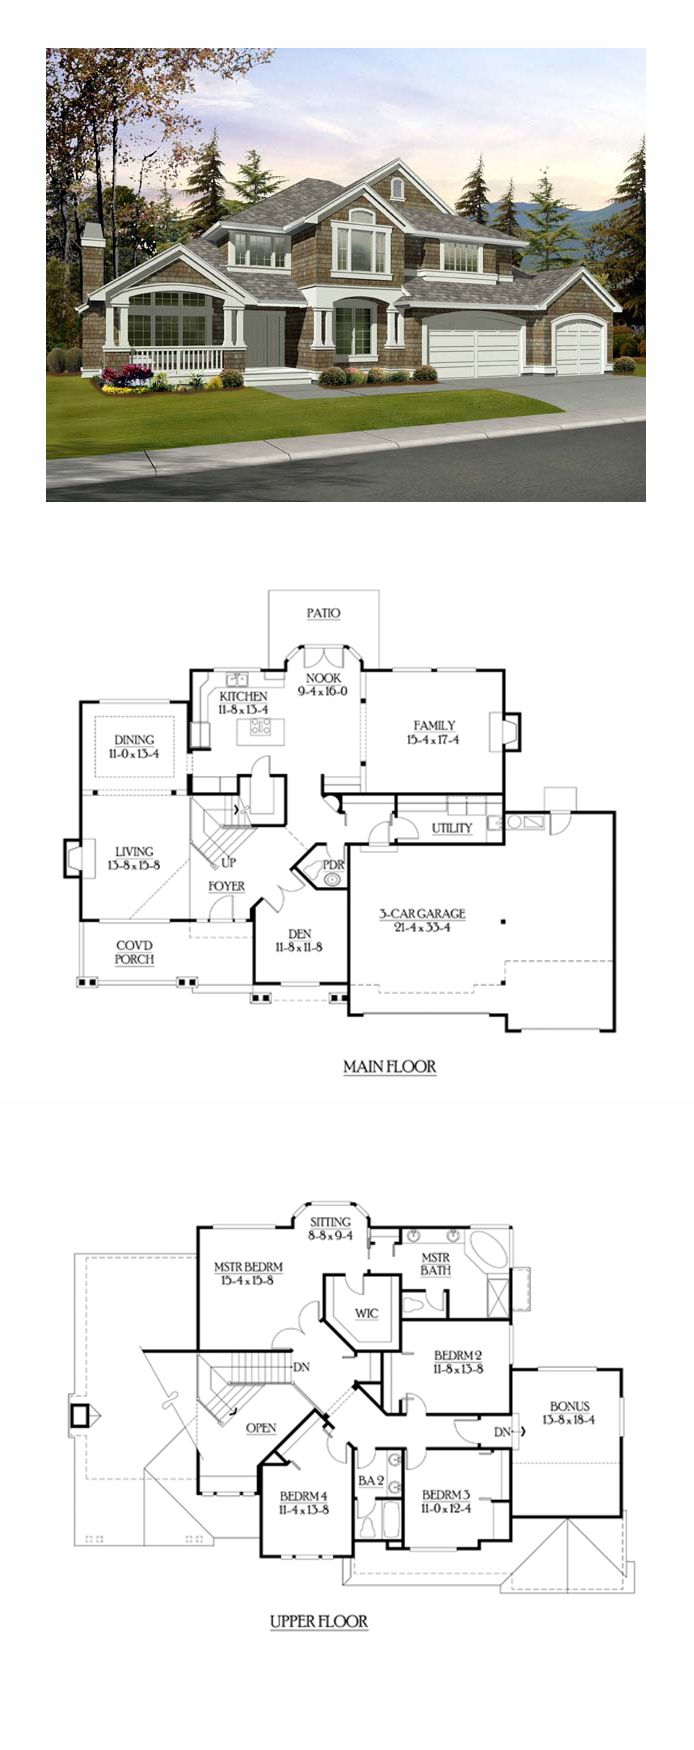 top 25 best 4 bedroom house ideas on pinterest 4 bedroom house shingle style cool house plan id total living area 3280 sq 4 bedrooms and bathrooms